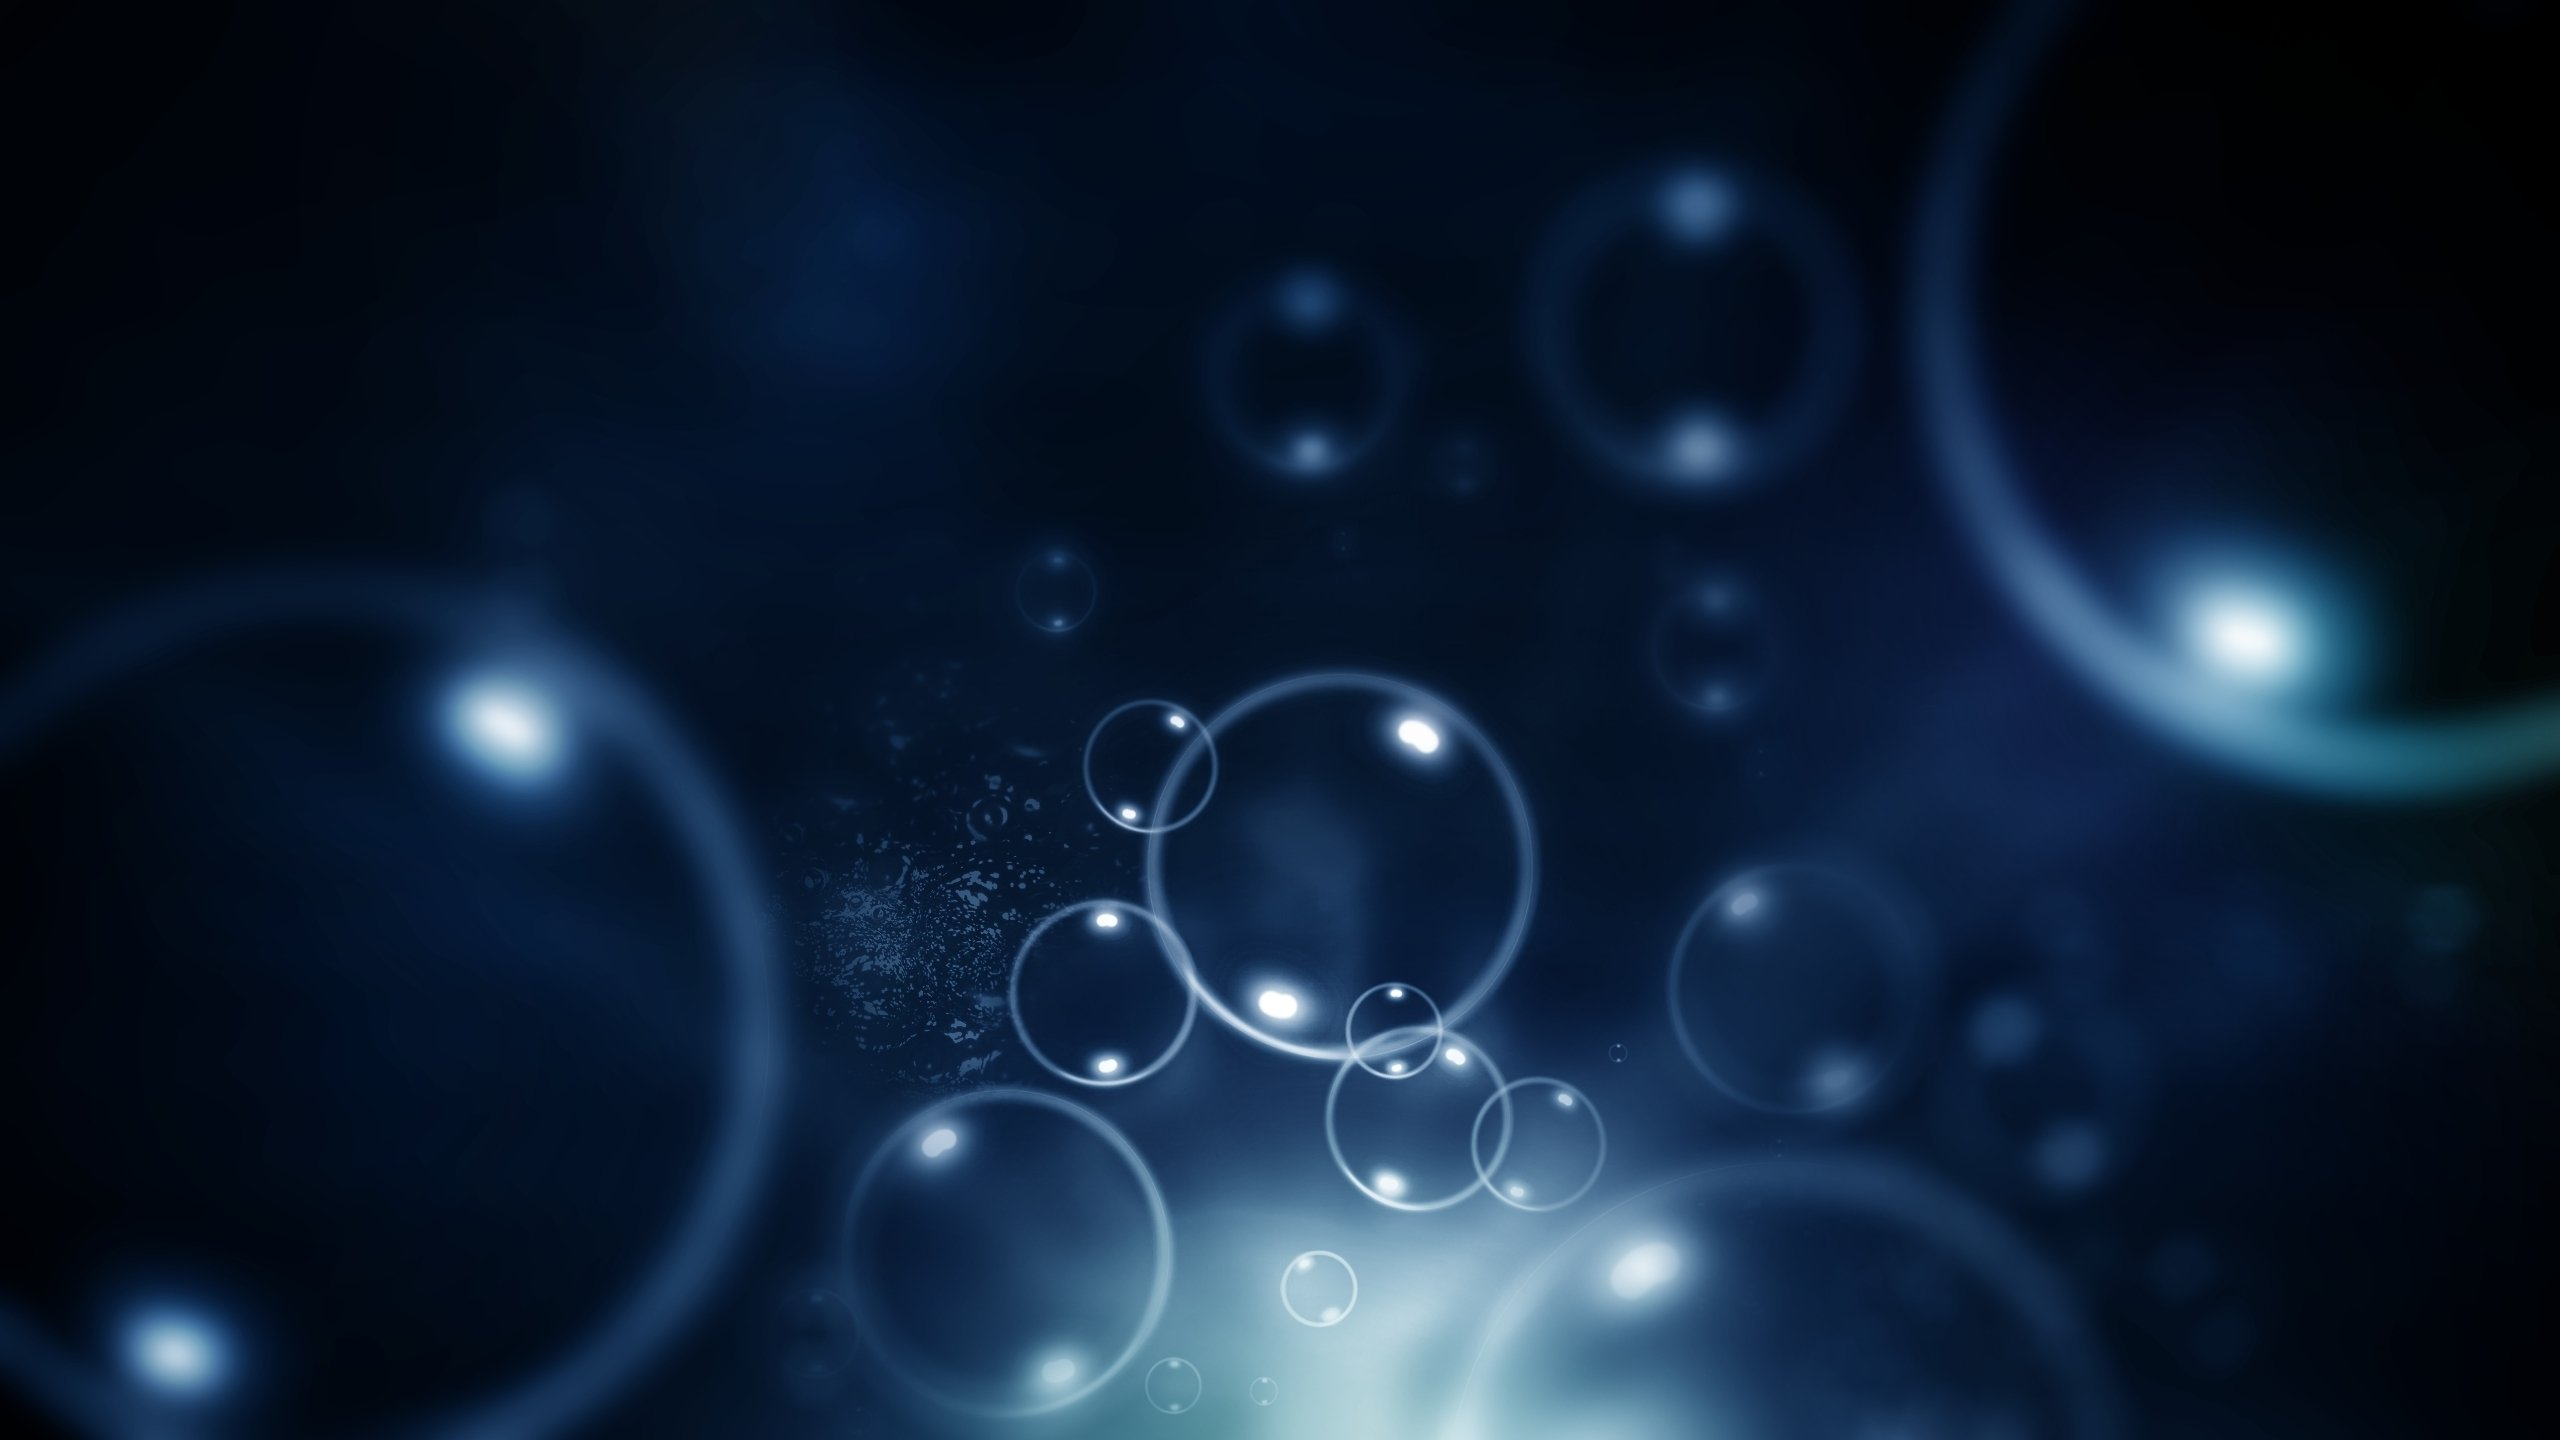 Download hd 2560x1440 Abstract bubble computer background ID:374618 for free